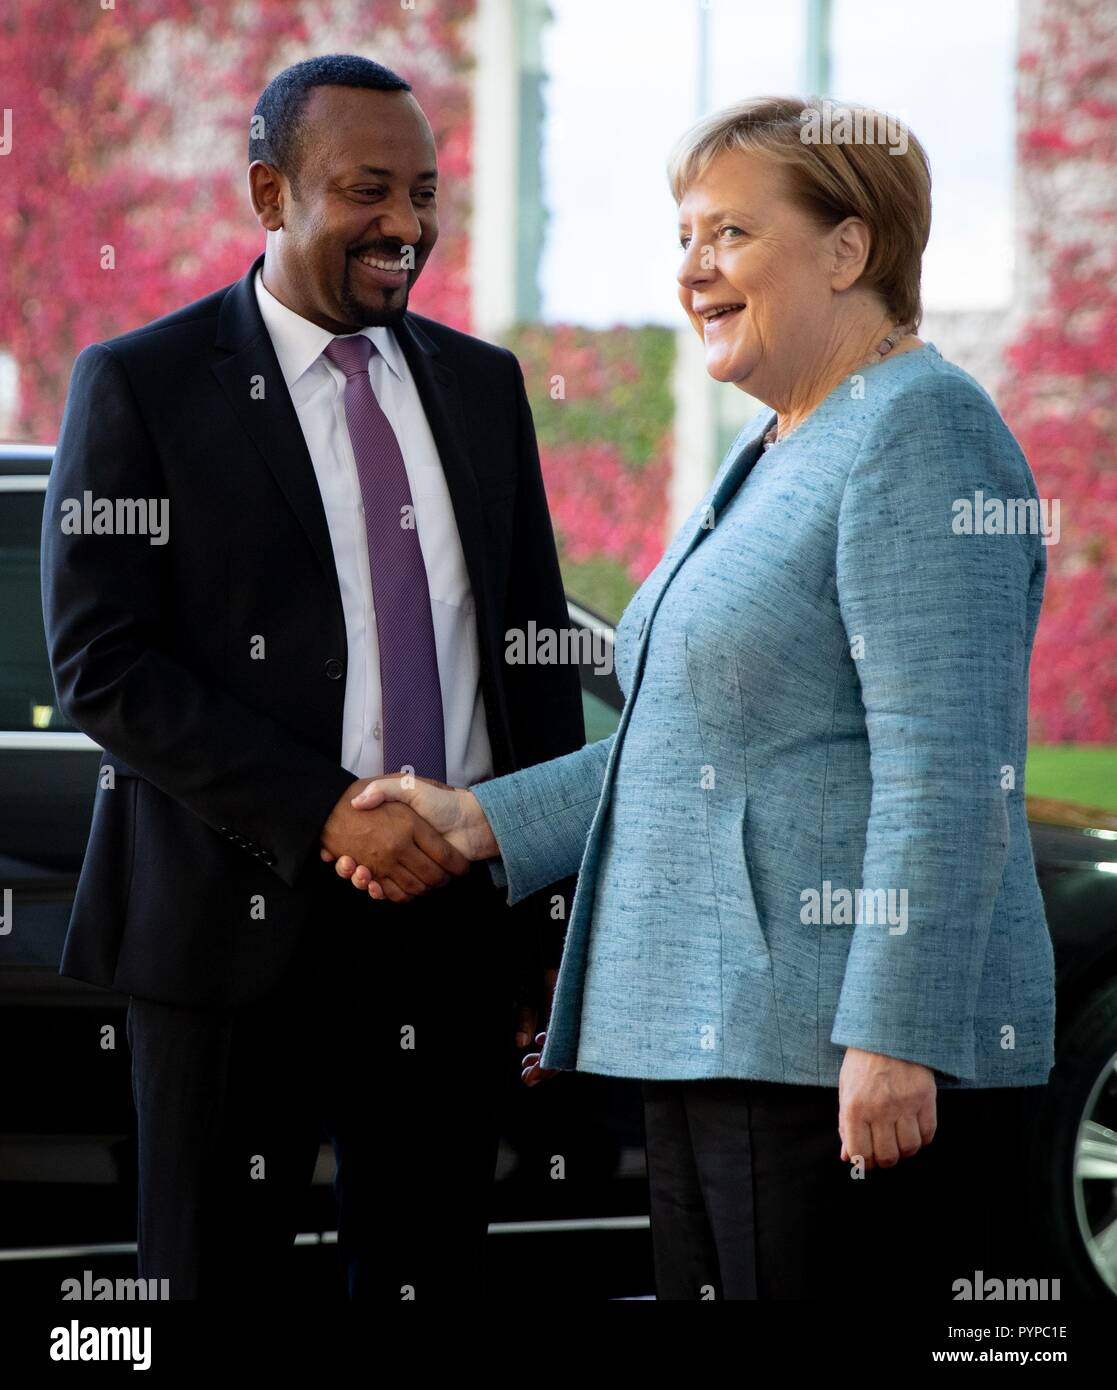 Berlin, Germany. 30th Oct, 2018. Chancellor Angela Merkel (CDU) receives Abiy Ahmed Ali, Prime Minister of the Democratic Federal Republic of Ethiopia, in front of the Federal Chancellery for the Africa Summit. This is where eleven heads of state and government come to Berlin for the summit meeting. It is about an initiative for more private investment in Africa, which Merkel launched last year as President of the Group of Leading Economic Powers (G20). Credit: Kay Nietfeld/dpa/Alamy Live News - Stock Image